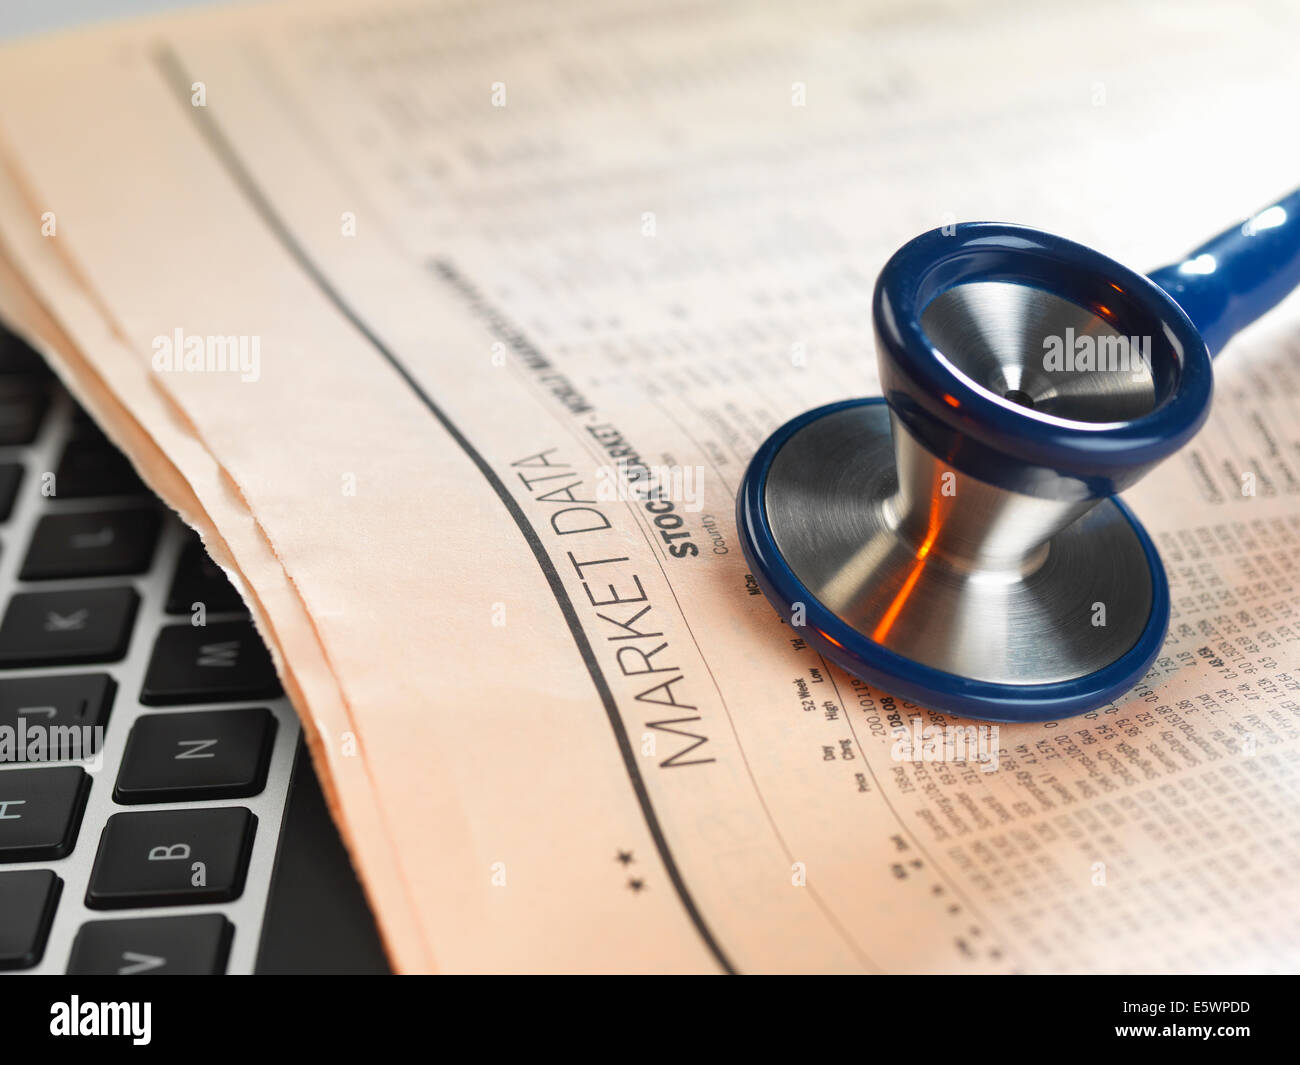 Financial health check: stethoscope on newspaper with financial markets for investing - Stock Image